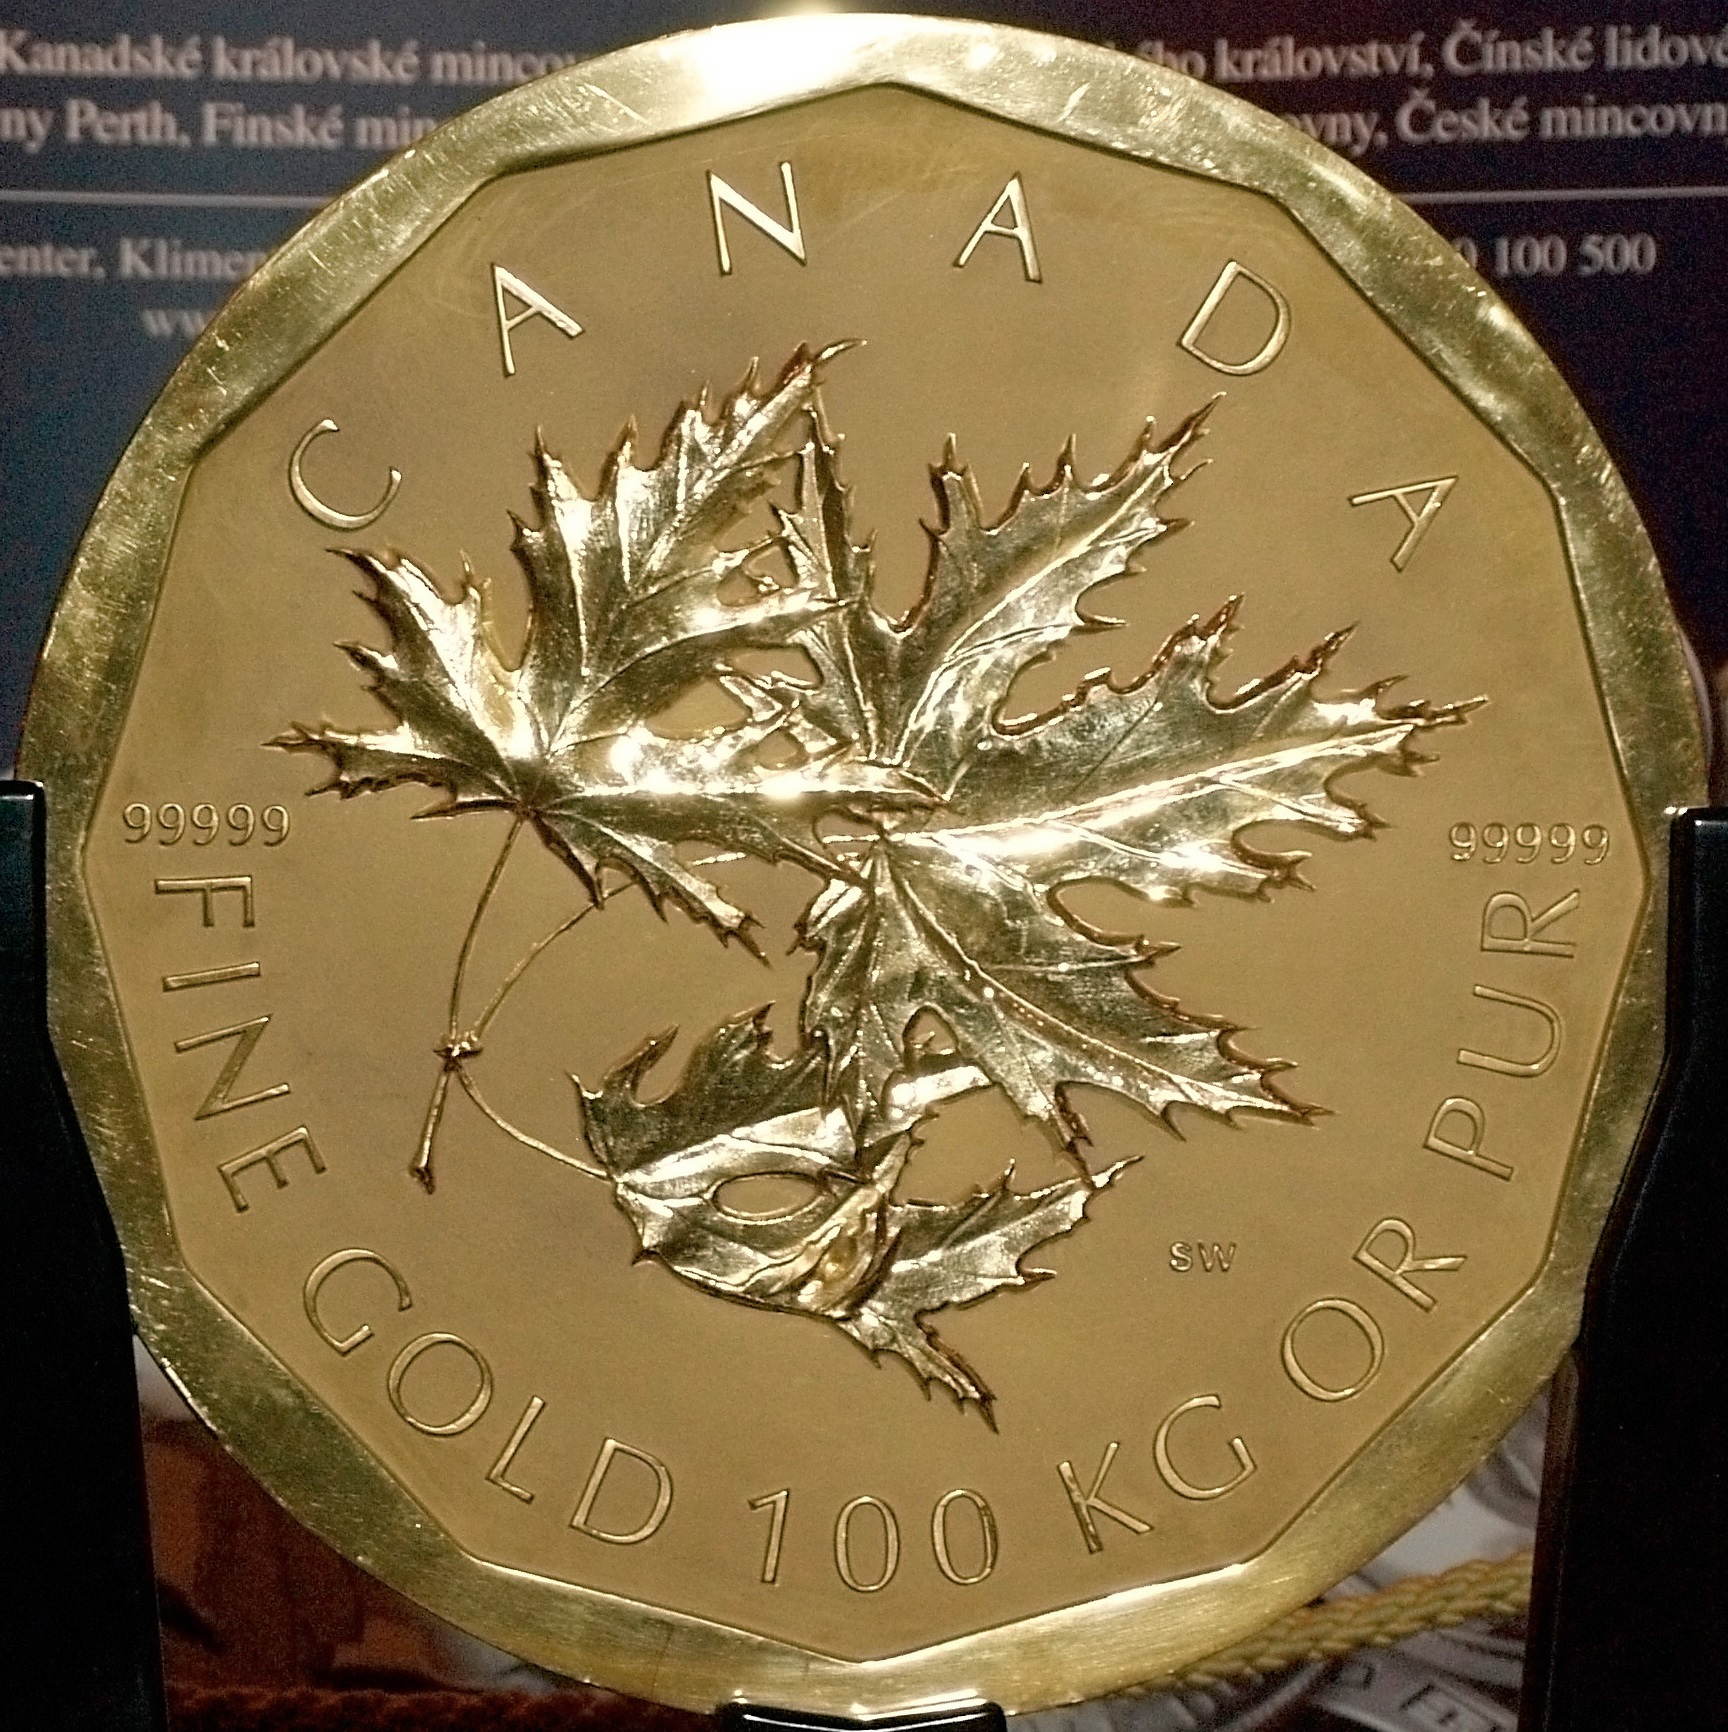 Canadian 1 000 000 Dollar Coin Currency Wiki Fandom